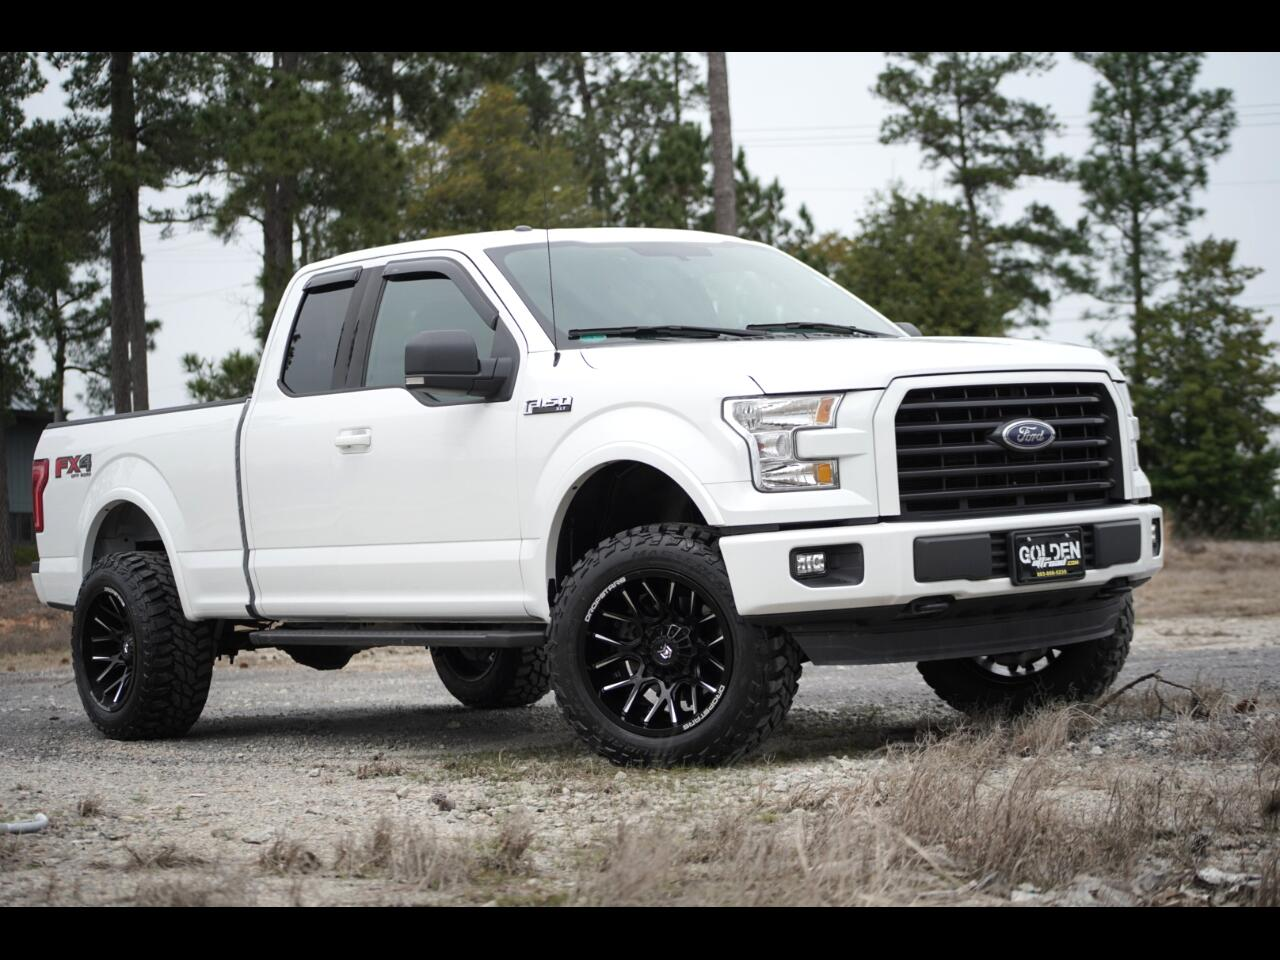 2015 Ford F-150 4wd FX4 Lifted Dropstar Wheels Color Keyed Bumpers